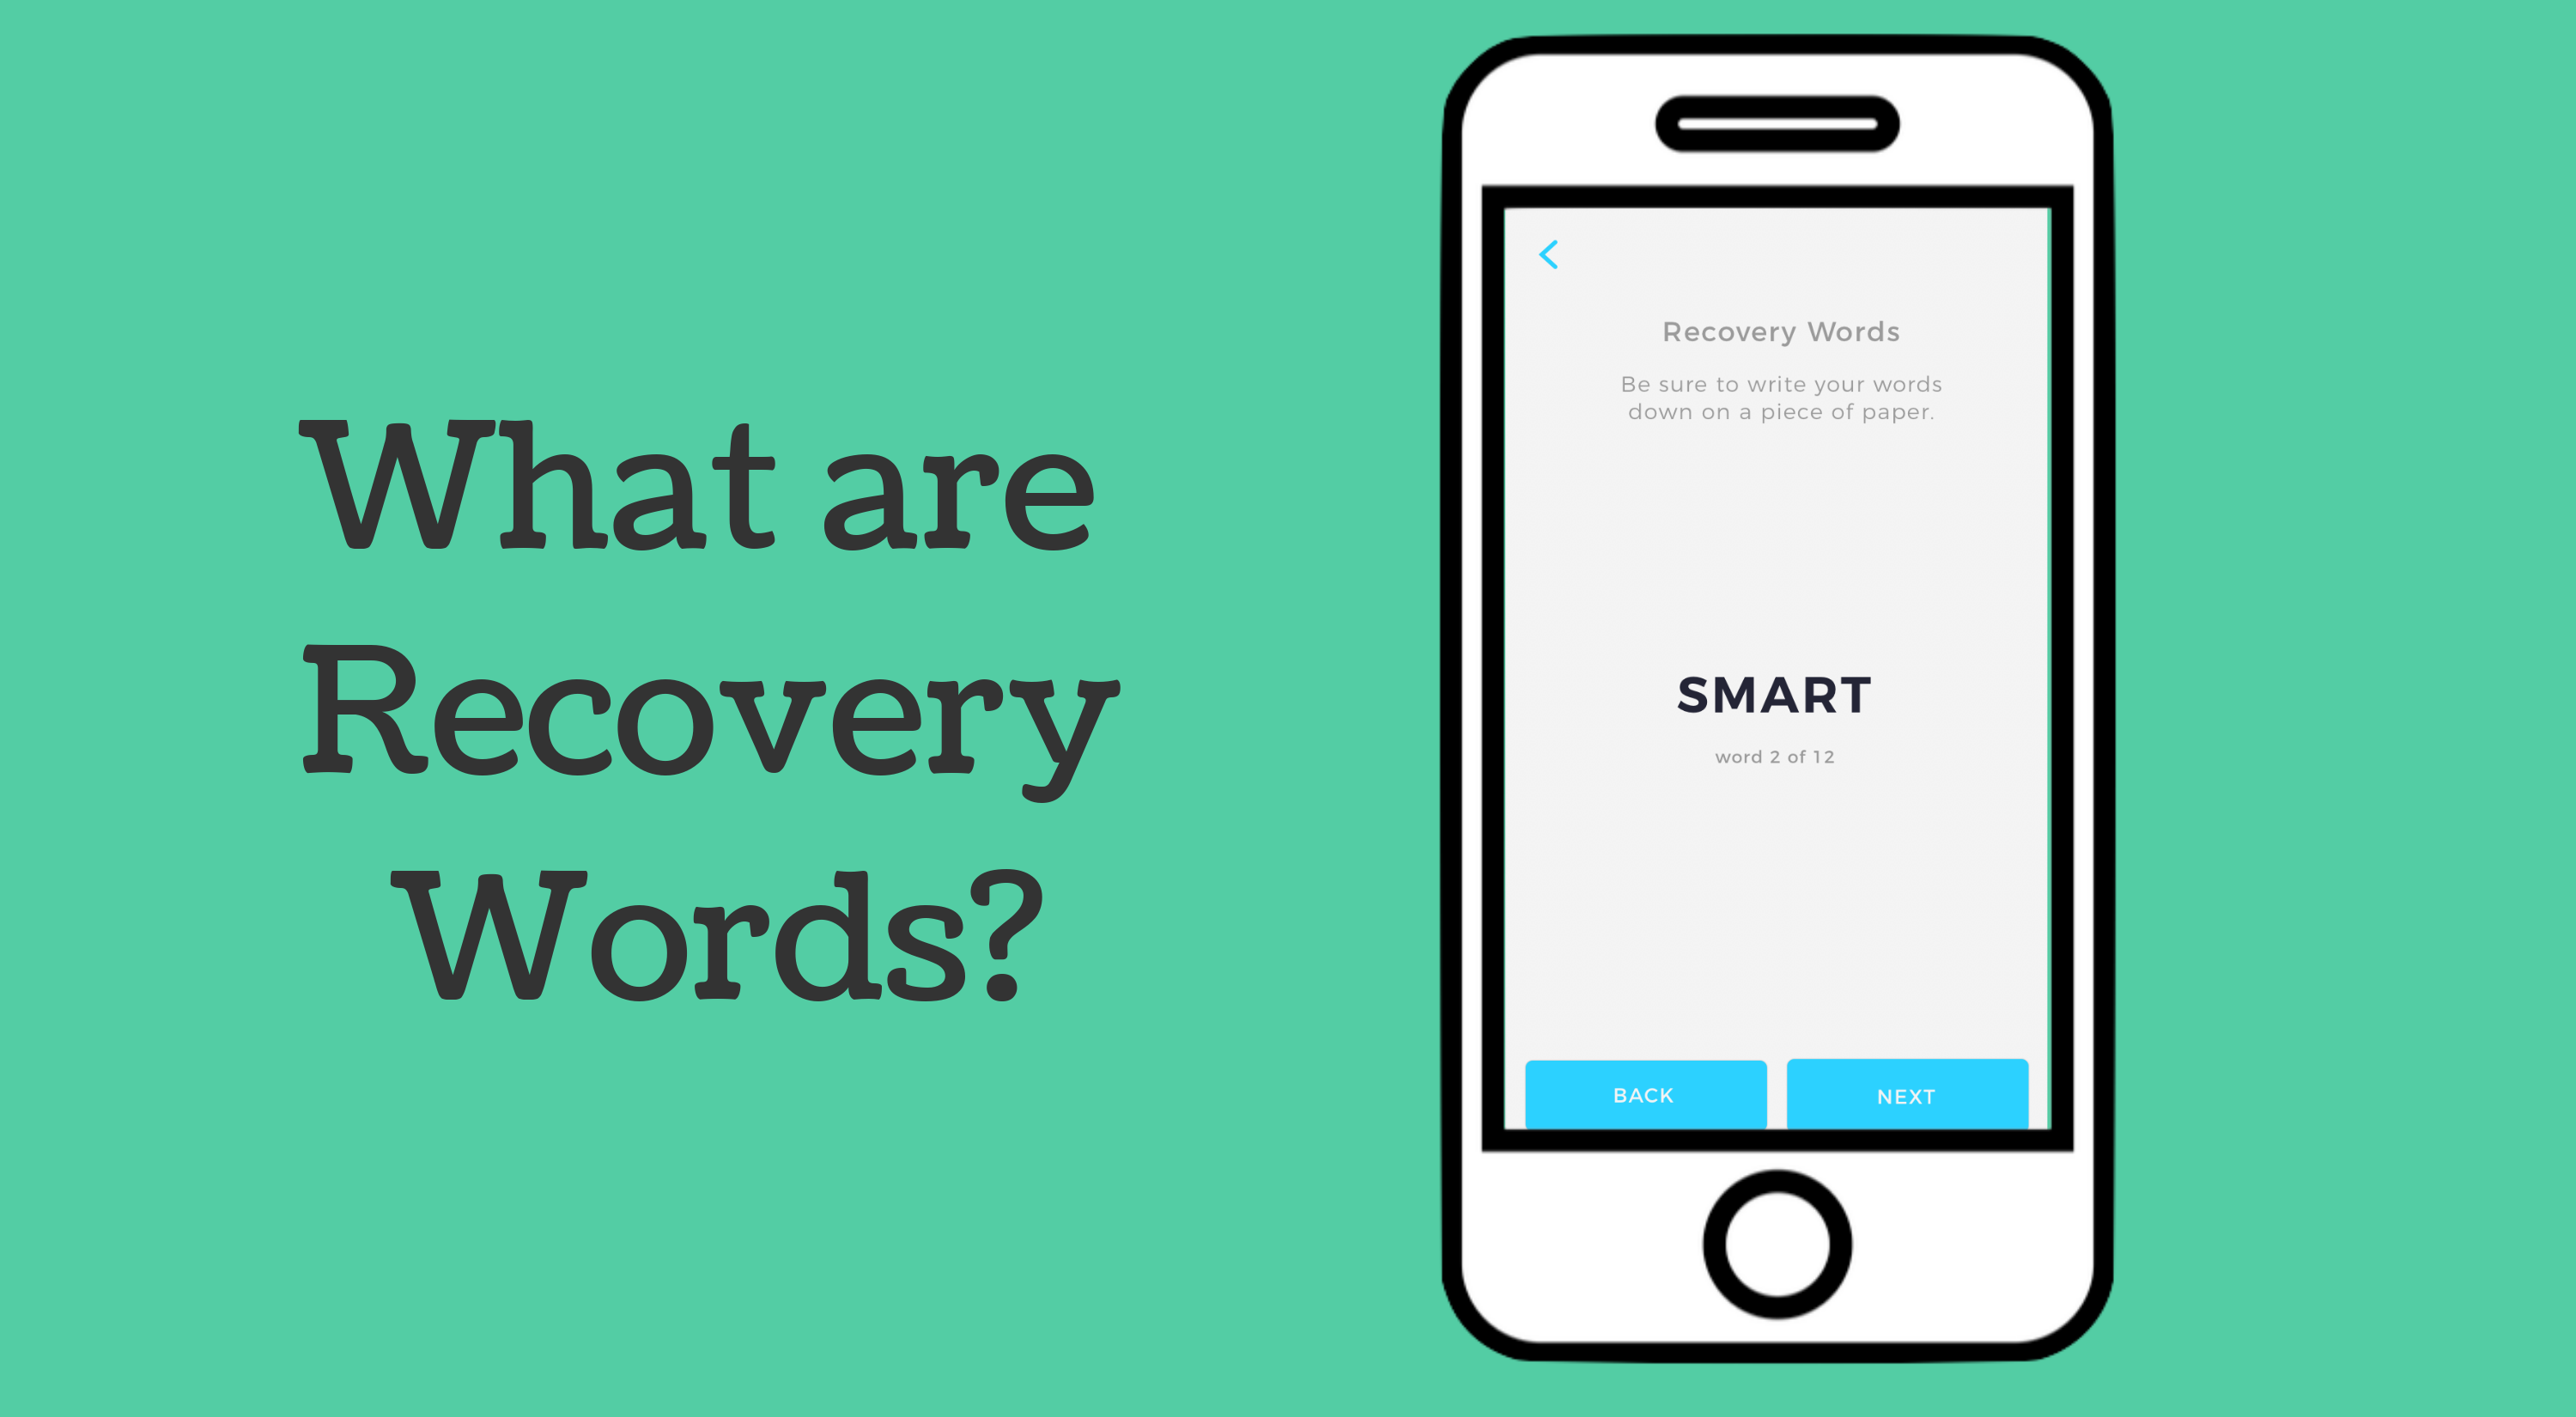 What Are Recovery Words?